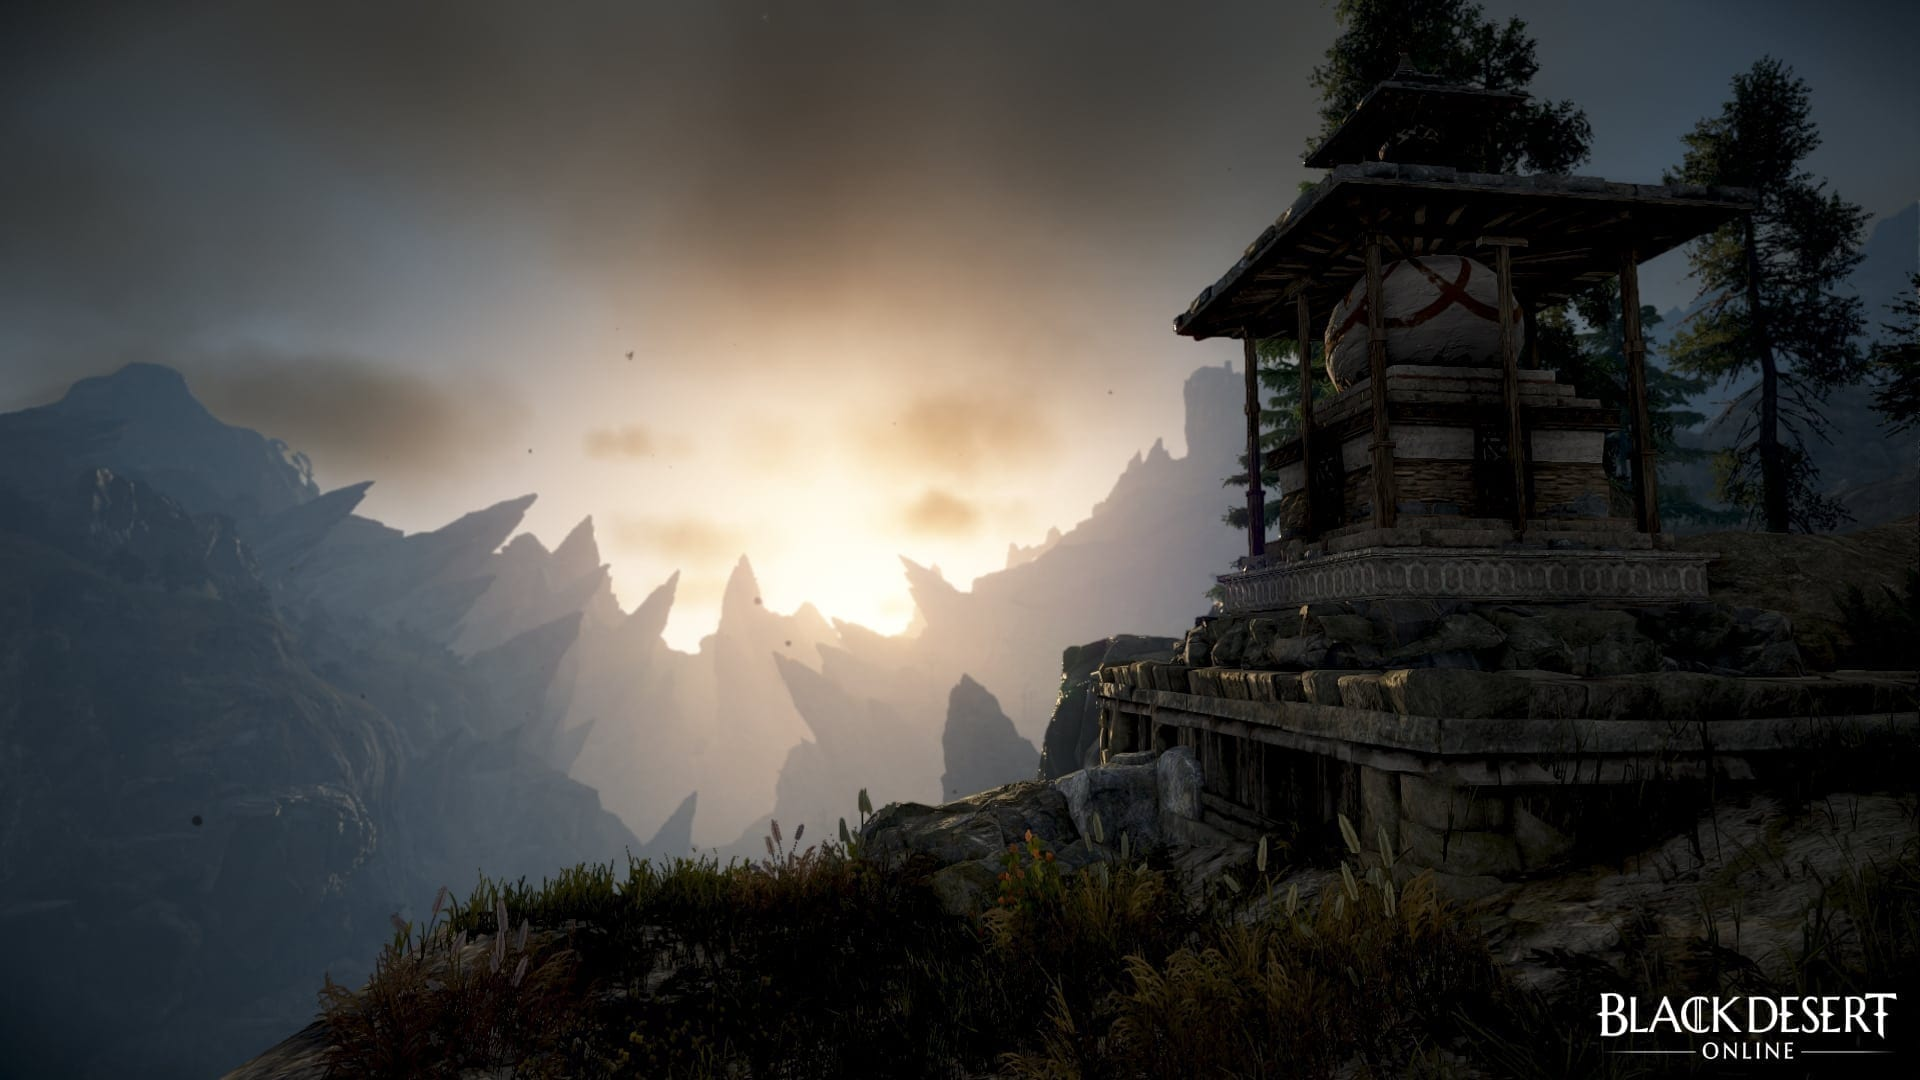 Drieghan node names on bdocodex some more blackdesertonline it may also has deep caves as pearl abyss said in early 2017 that they want to expand the map more vertically with high snow covered mountains gumiabroncs Image collections